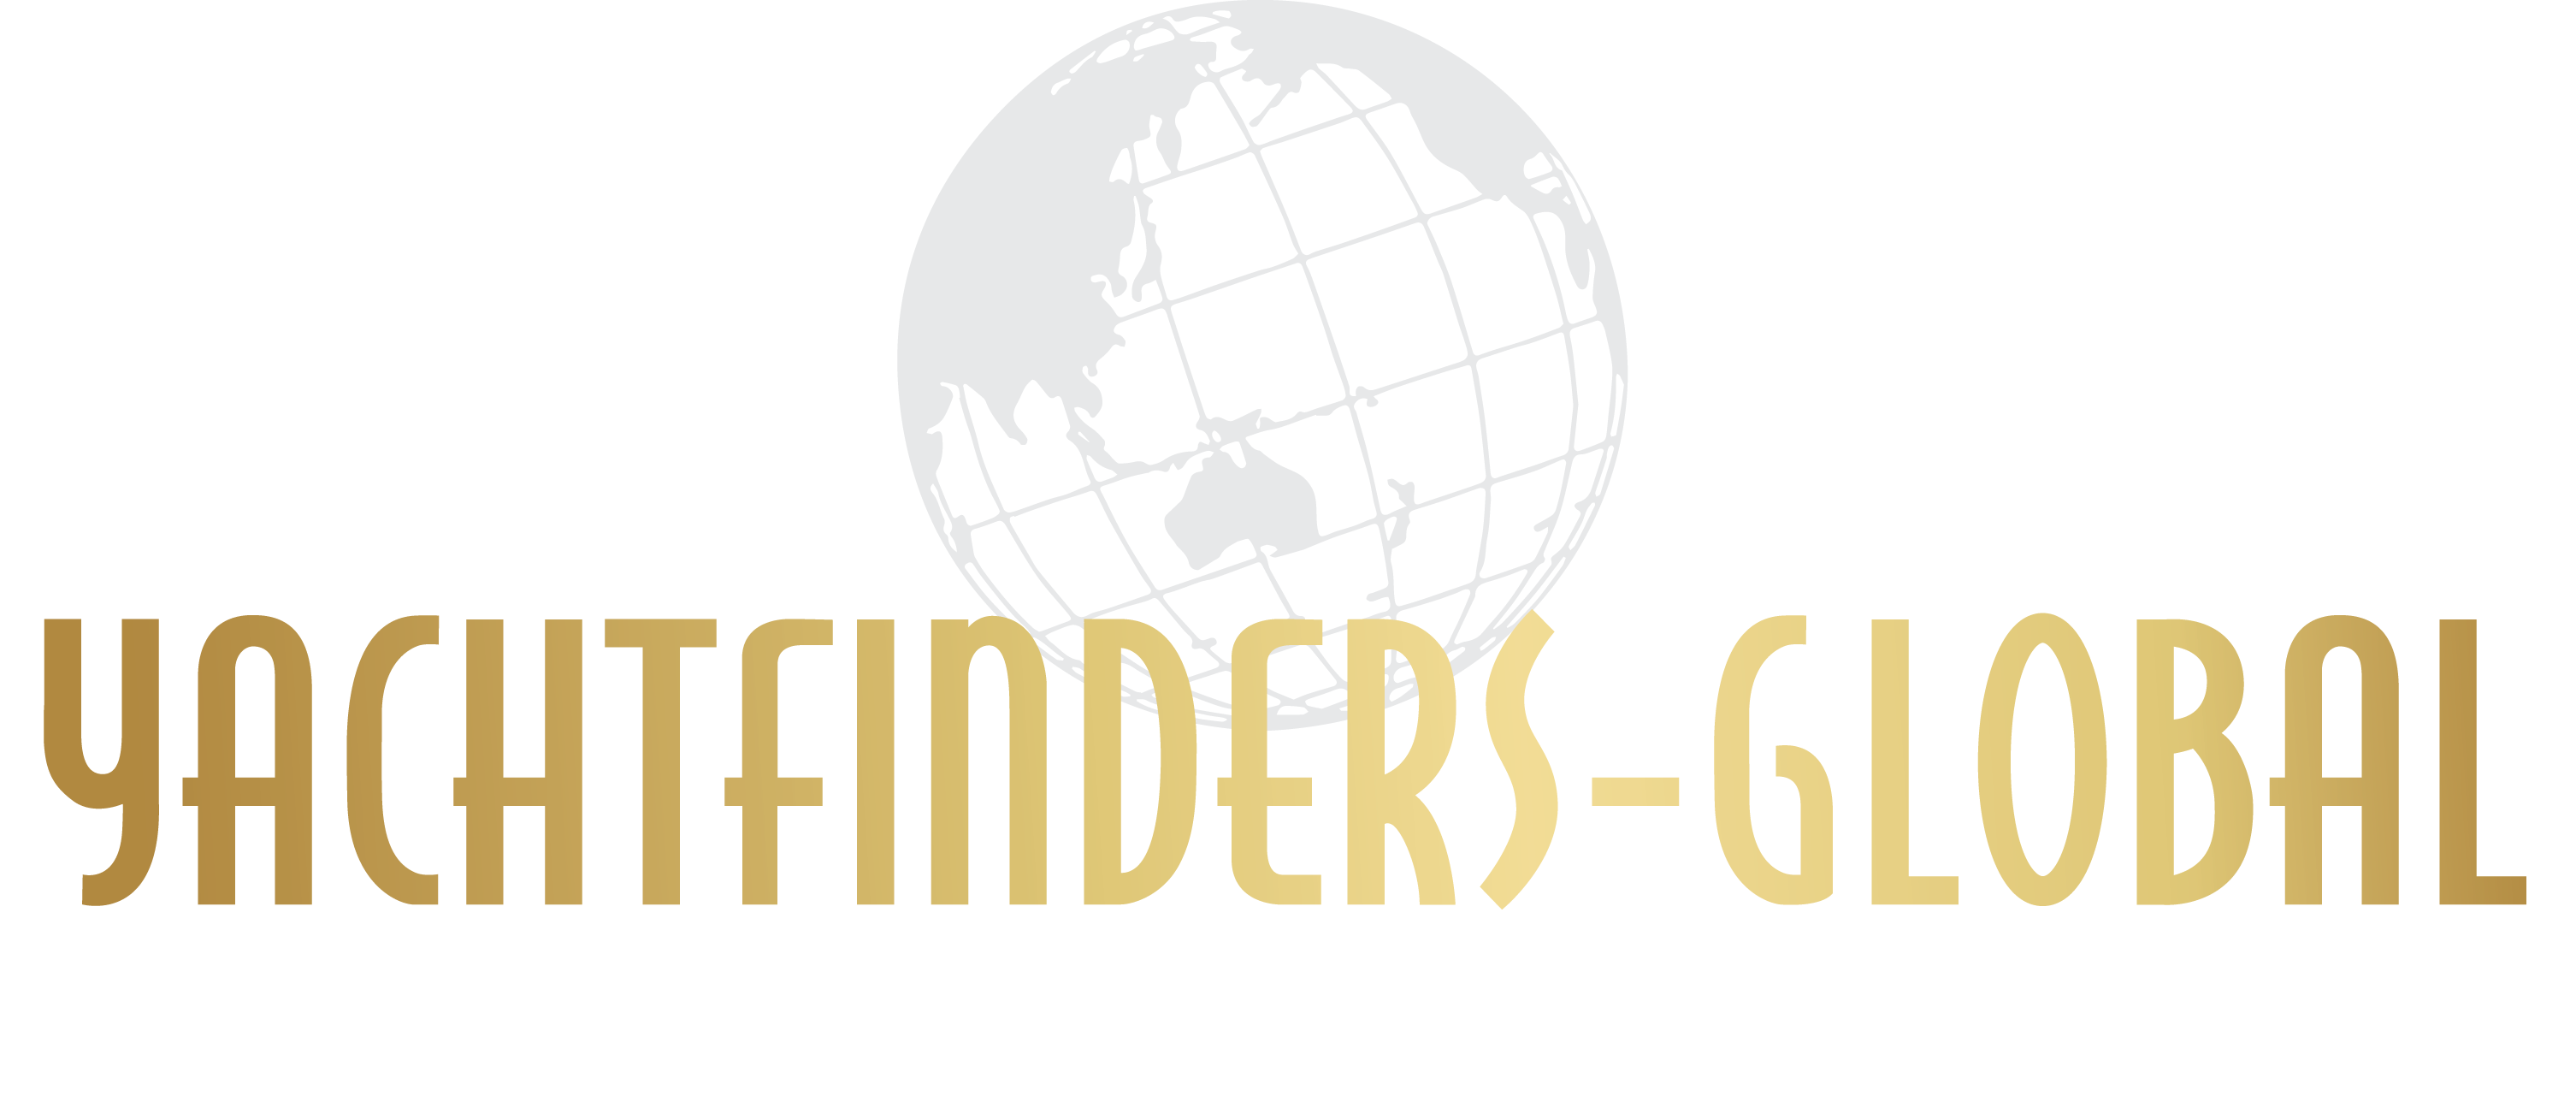 Yachtfinders Global Ltd